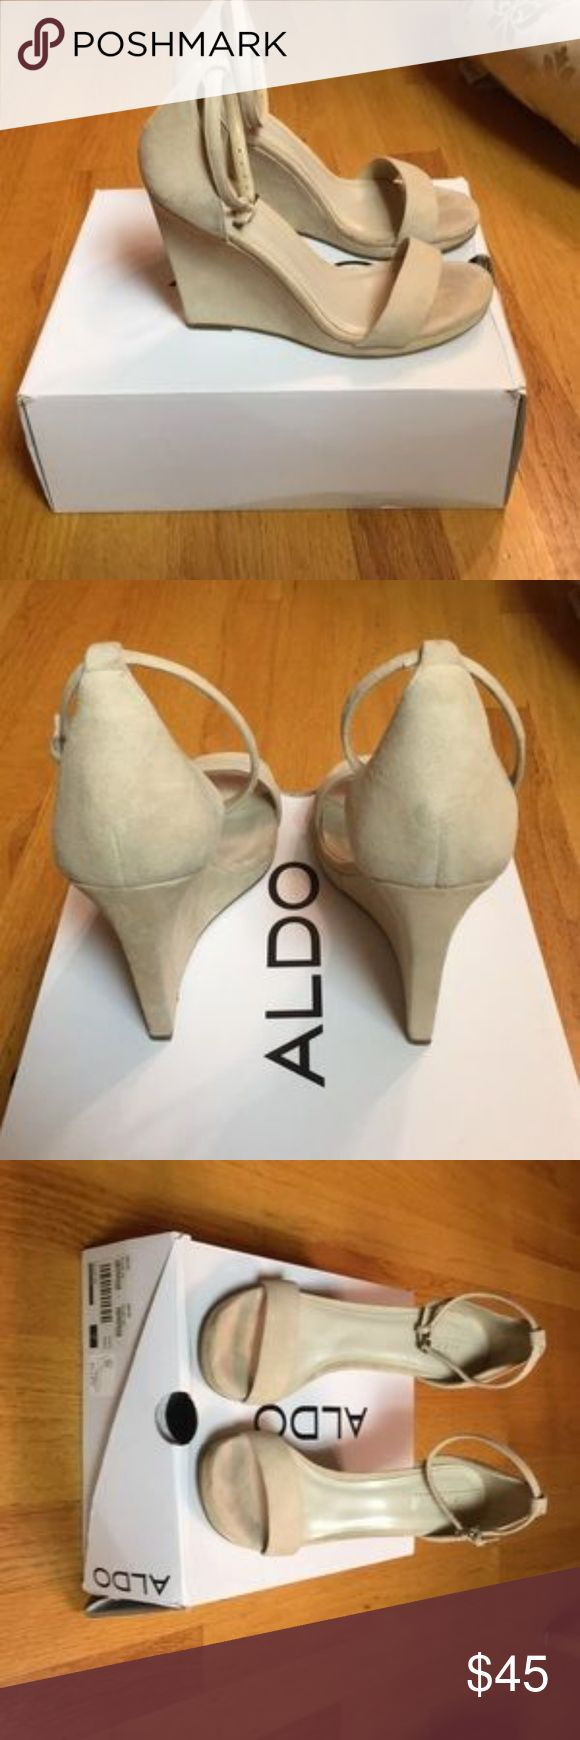 Aldo Cream Wedges Cream wedges only worn once for a wedding I was in. Great shape! ALDO Shoes Wedges